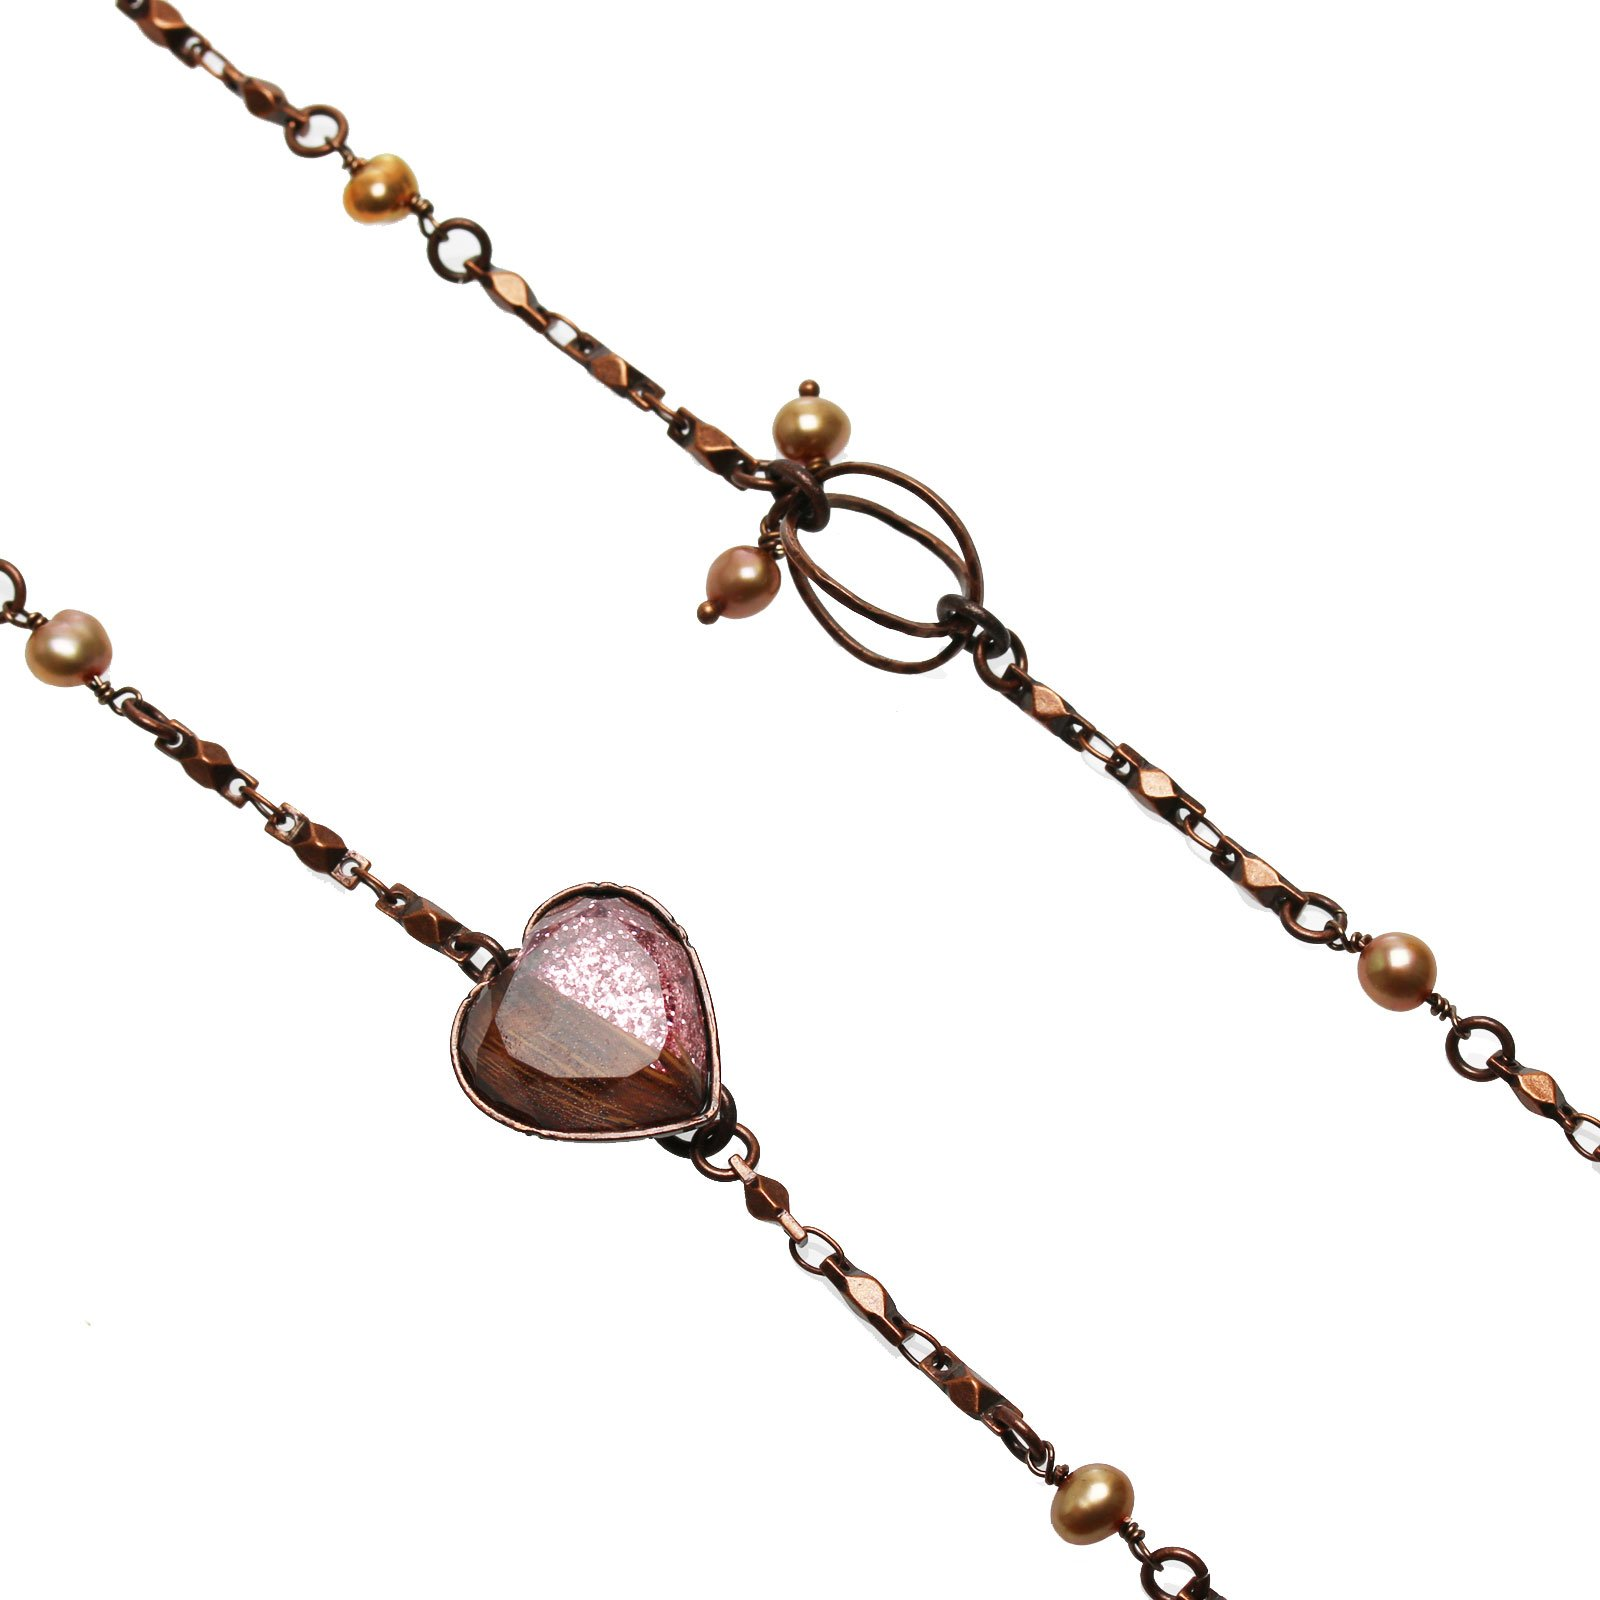 Tamarusan Glasses Chain Strap Pink Lame Heart Antique Finished Freshwater Pearl Original Resin by TAMARUSAN